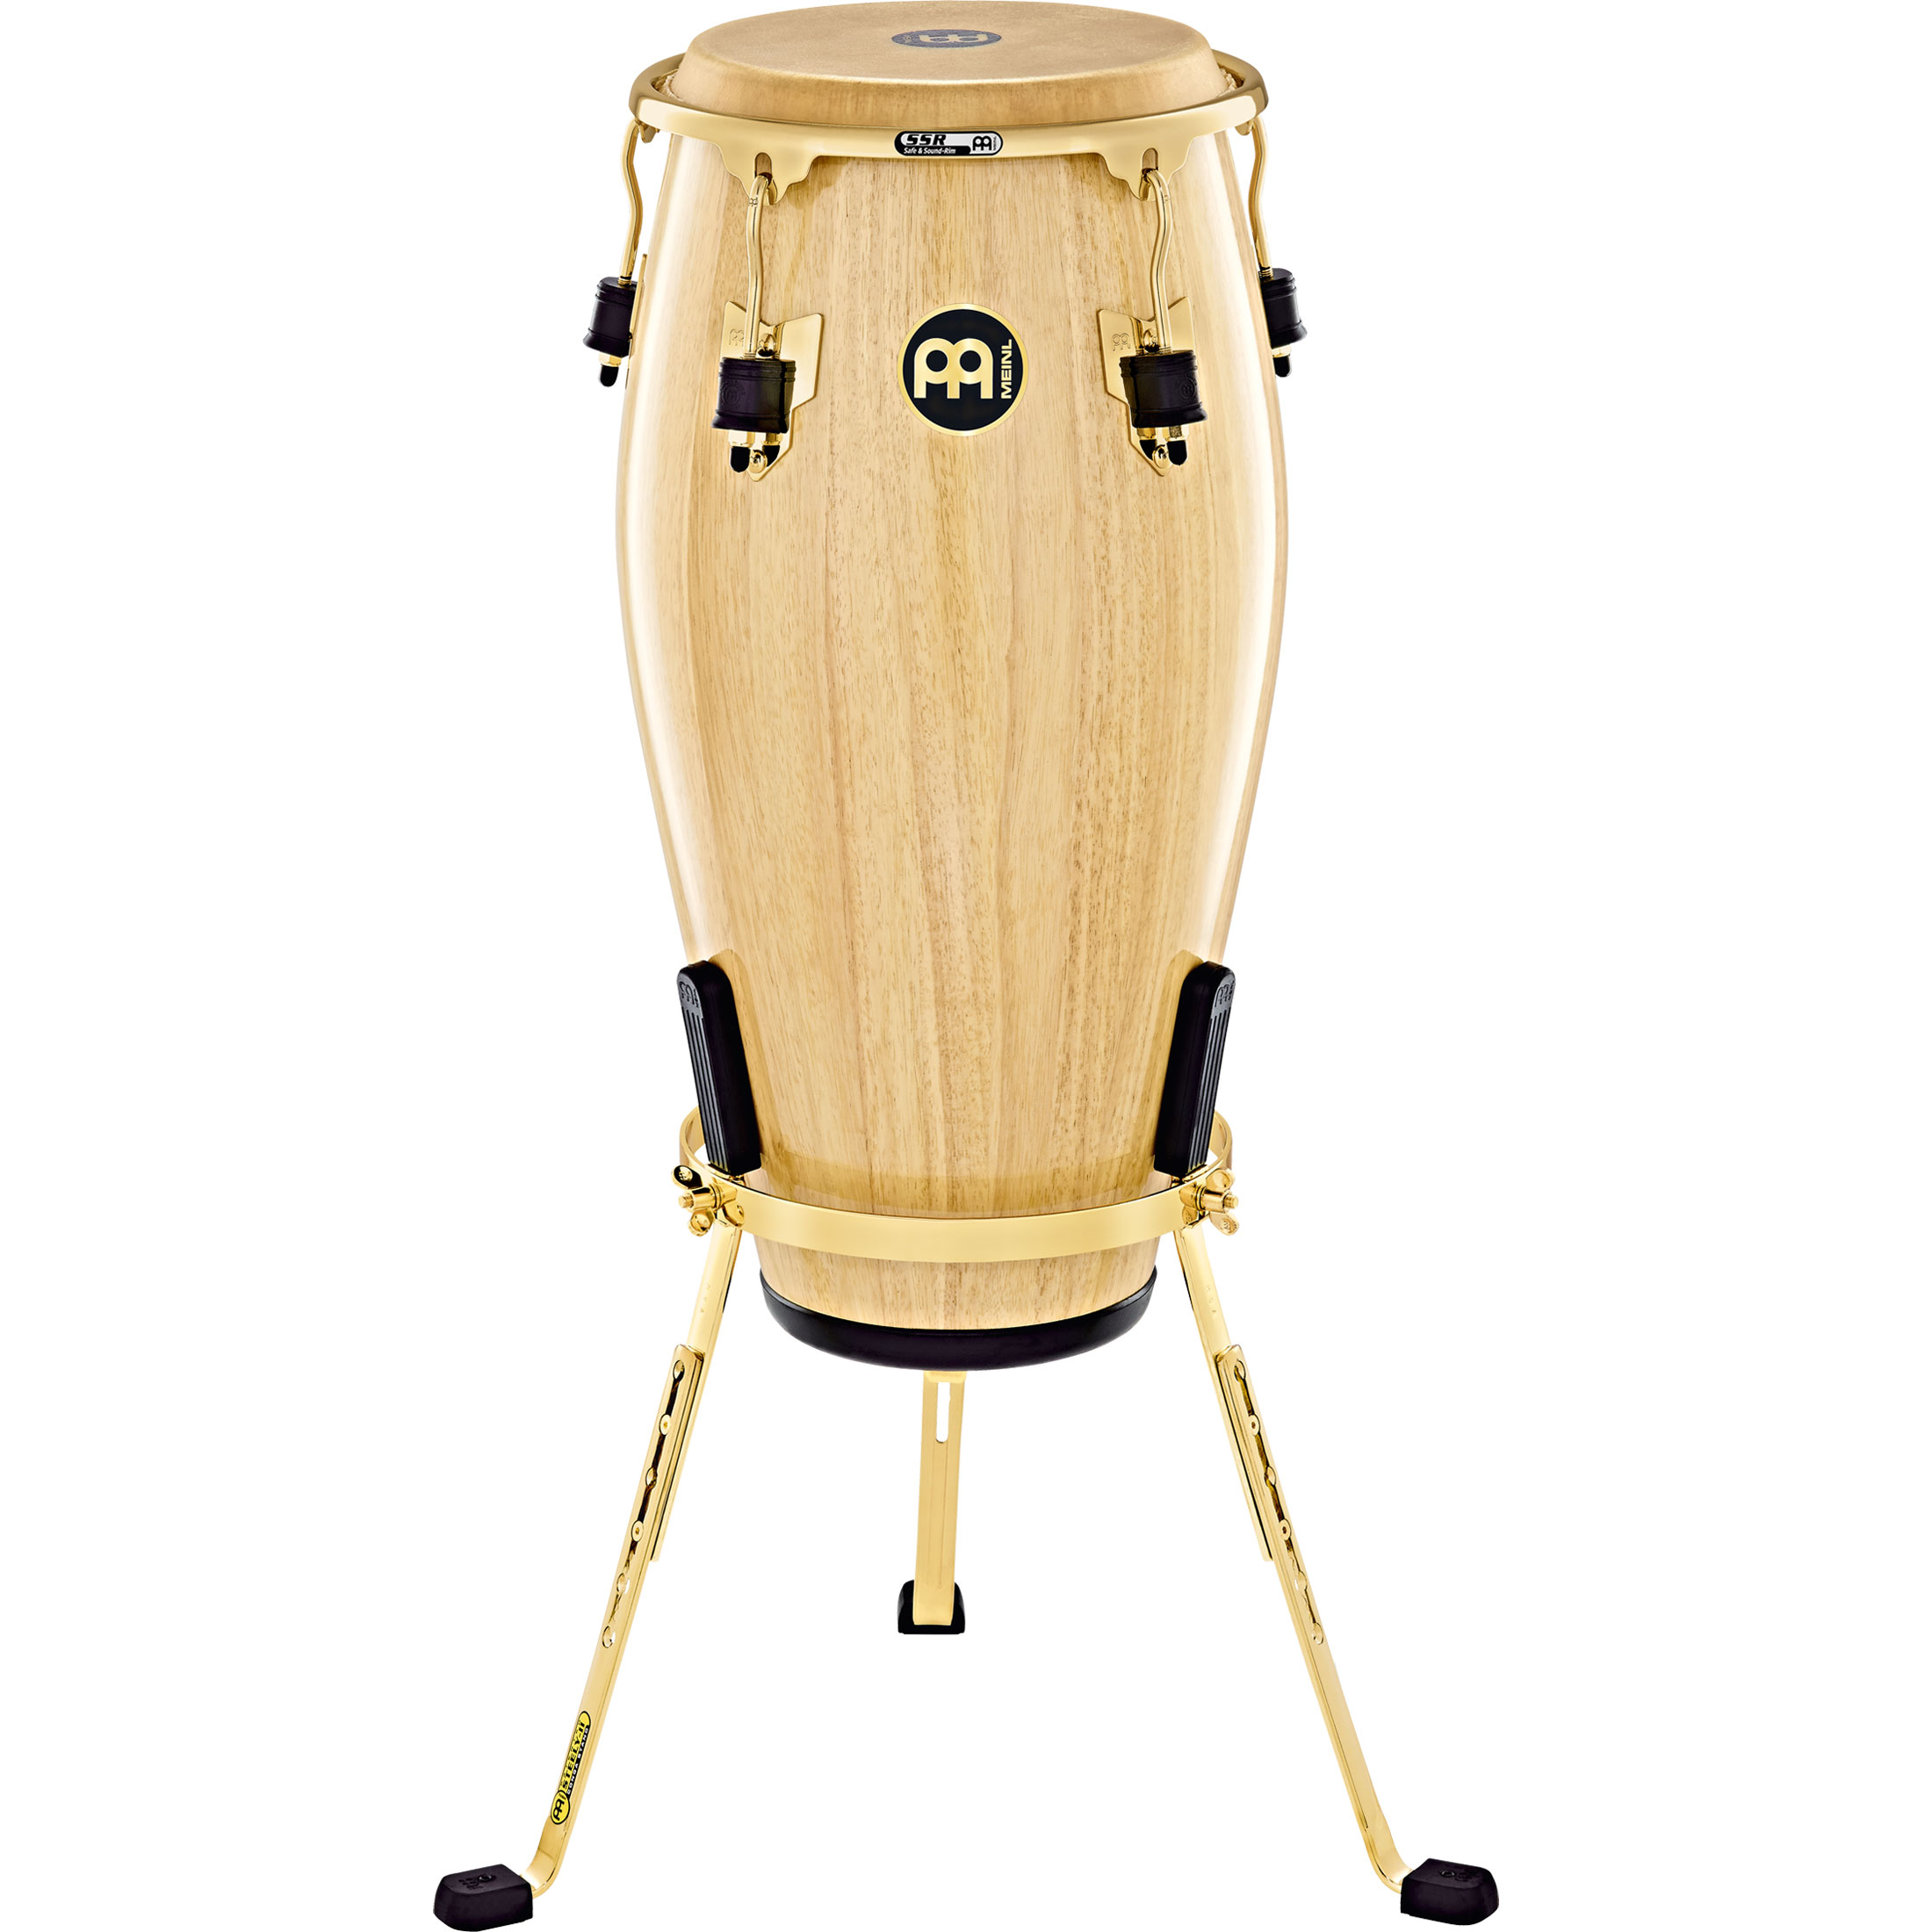 "Meinl 12.5"" Marathon Exclusive Tumba Conga in Natural with Gold Hardware"